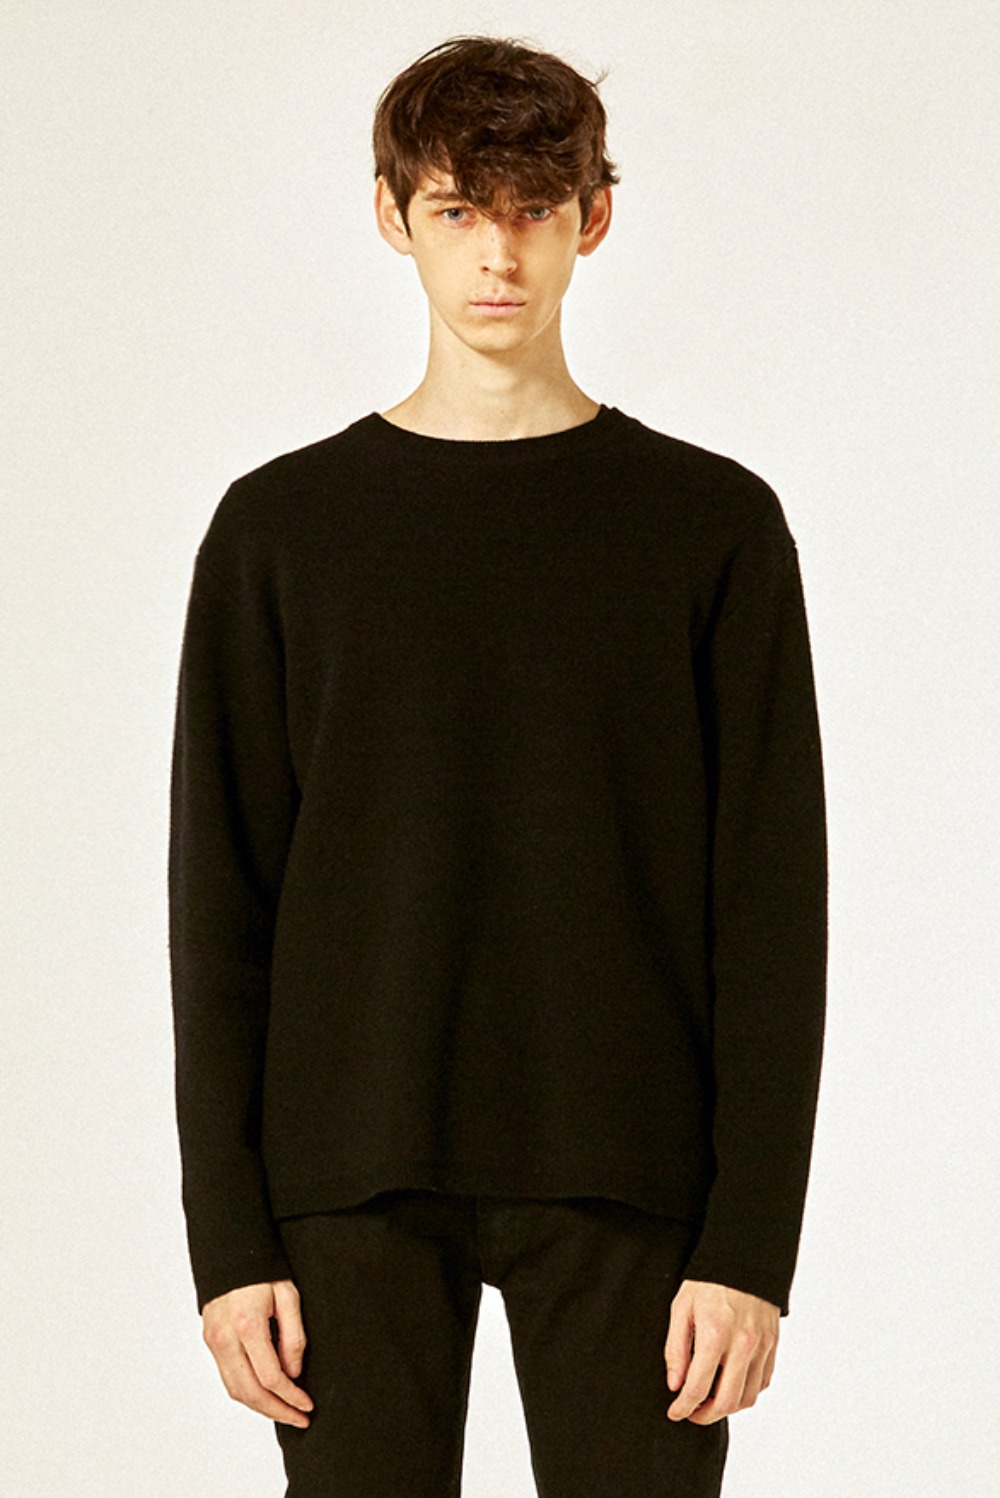 21 S/S Cashmere Knit (Black)